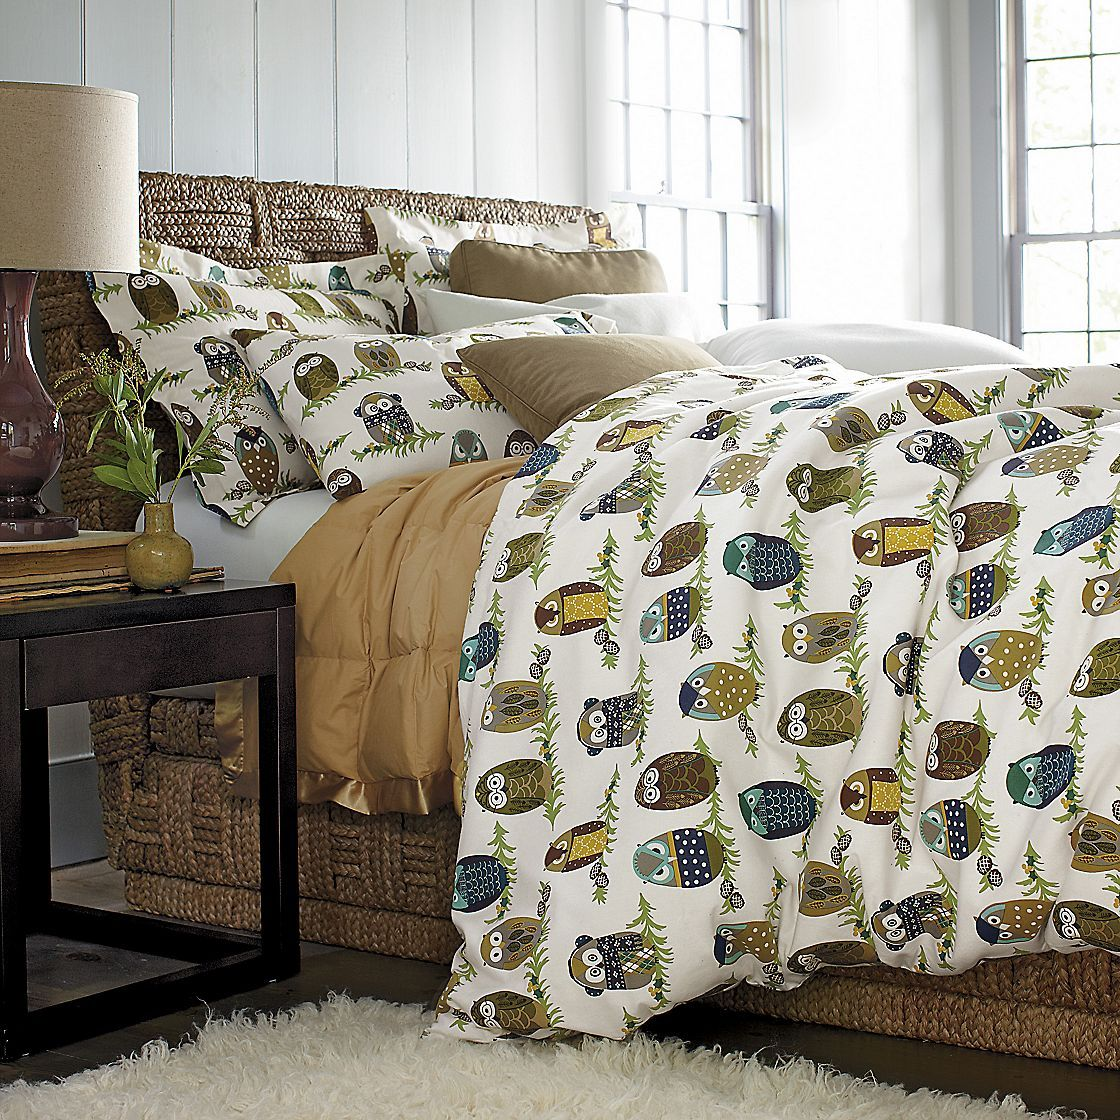 Using Twin Flat Sheets In This Grown Up Mod Owl Print To